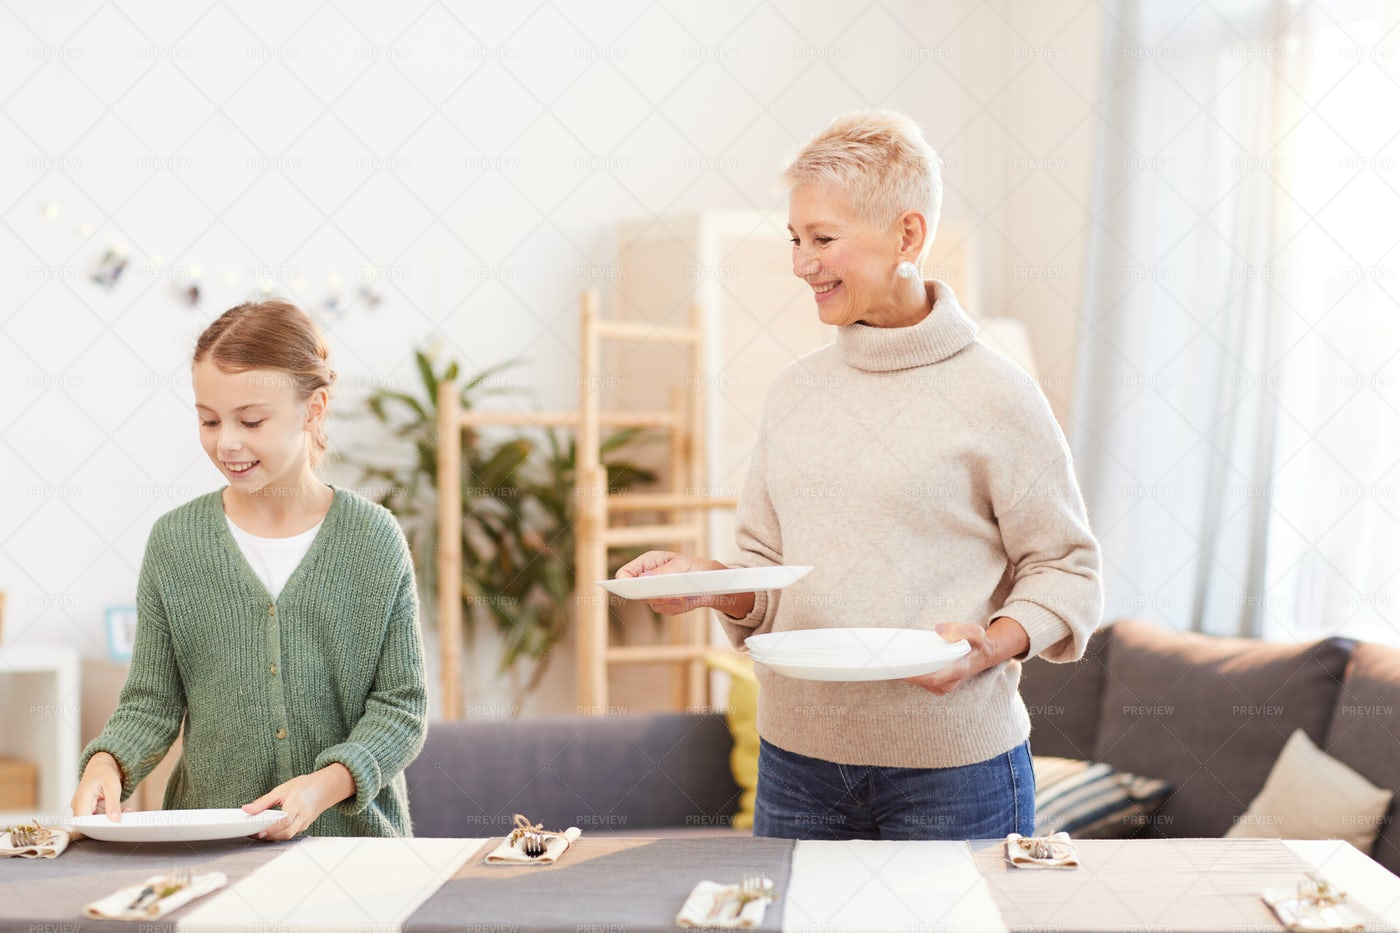 Mother And Daughter Prepre The Table: Stock Photos